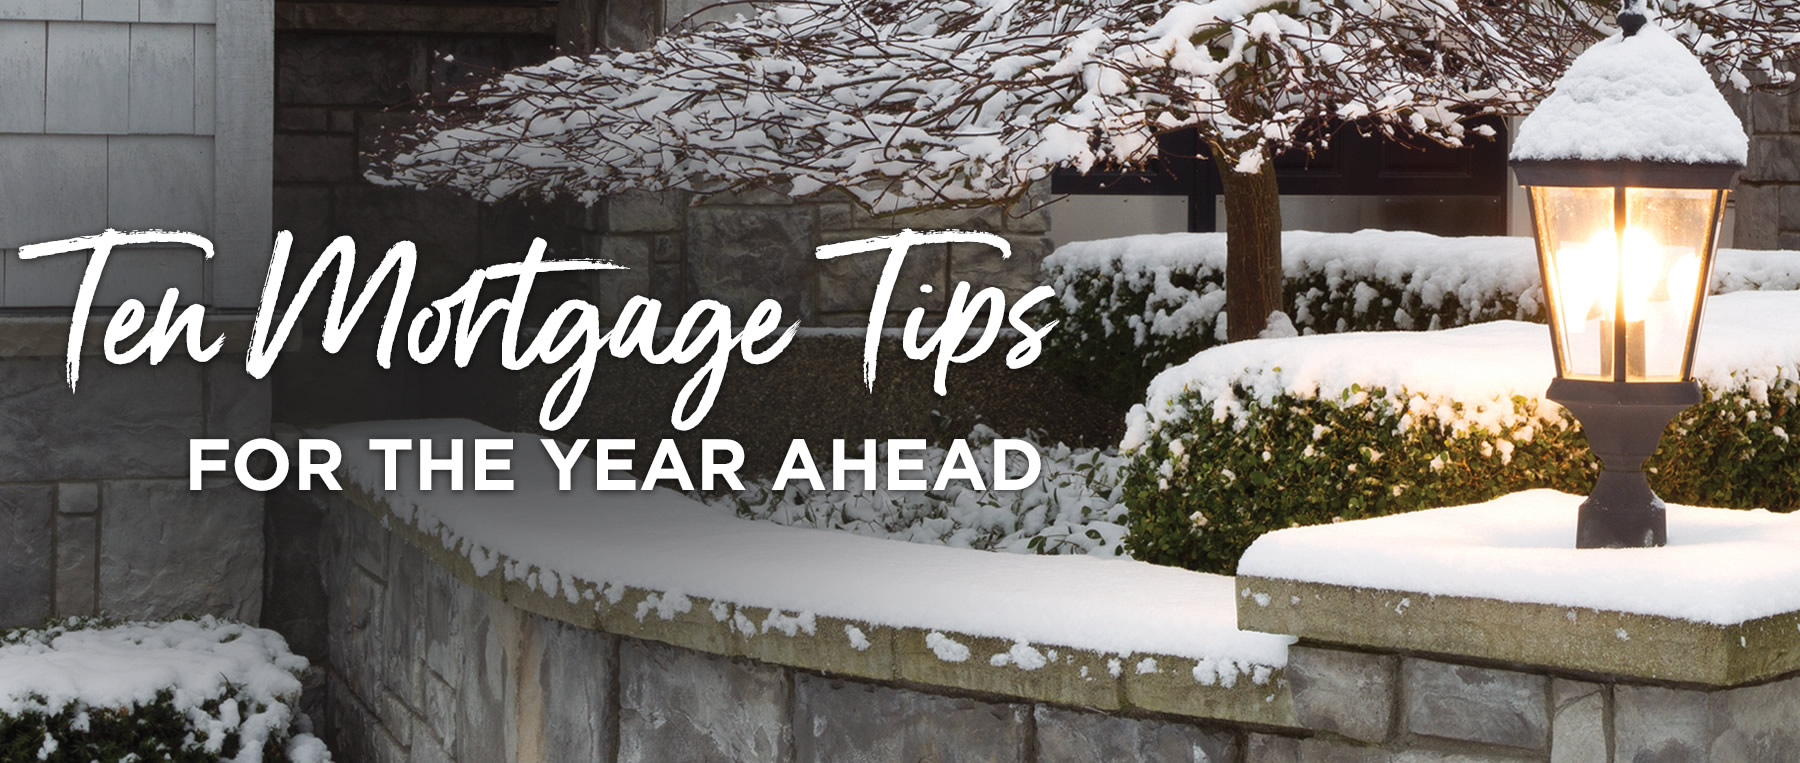 Ten Mortgage Tips for the Year Ahead